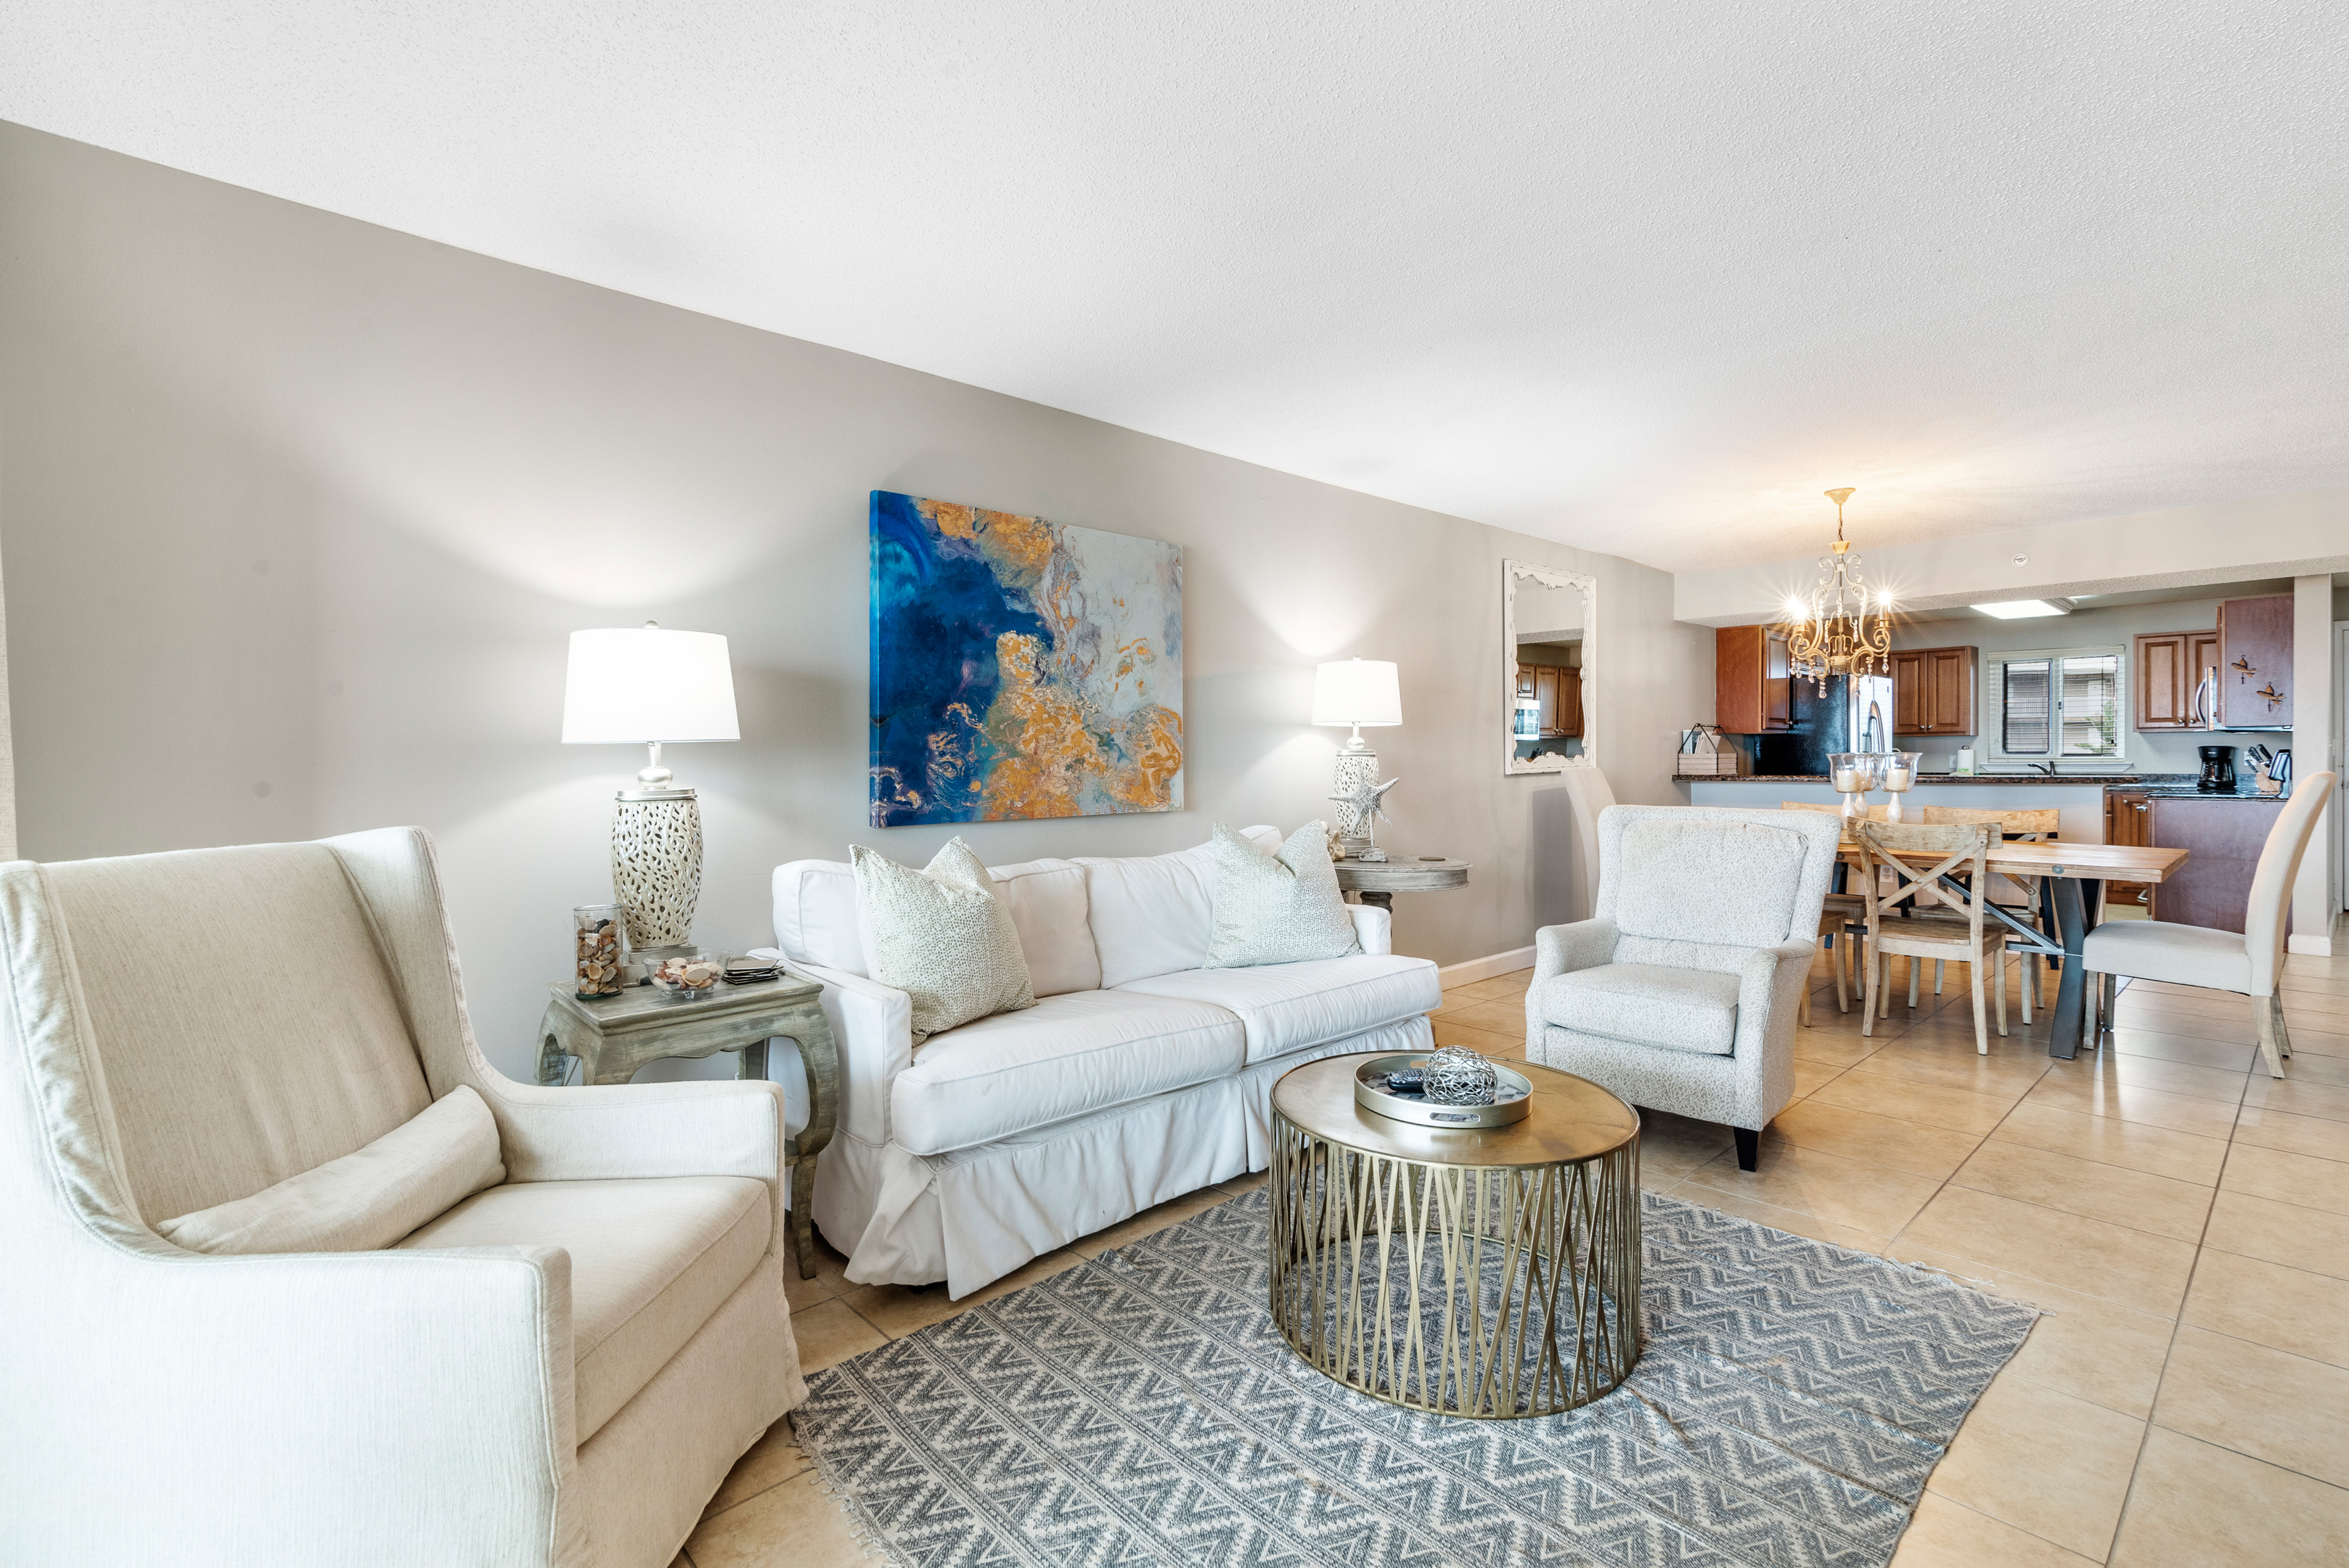 Oceanfront condo rental in Perdido Key with 2 bedrooms